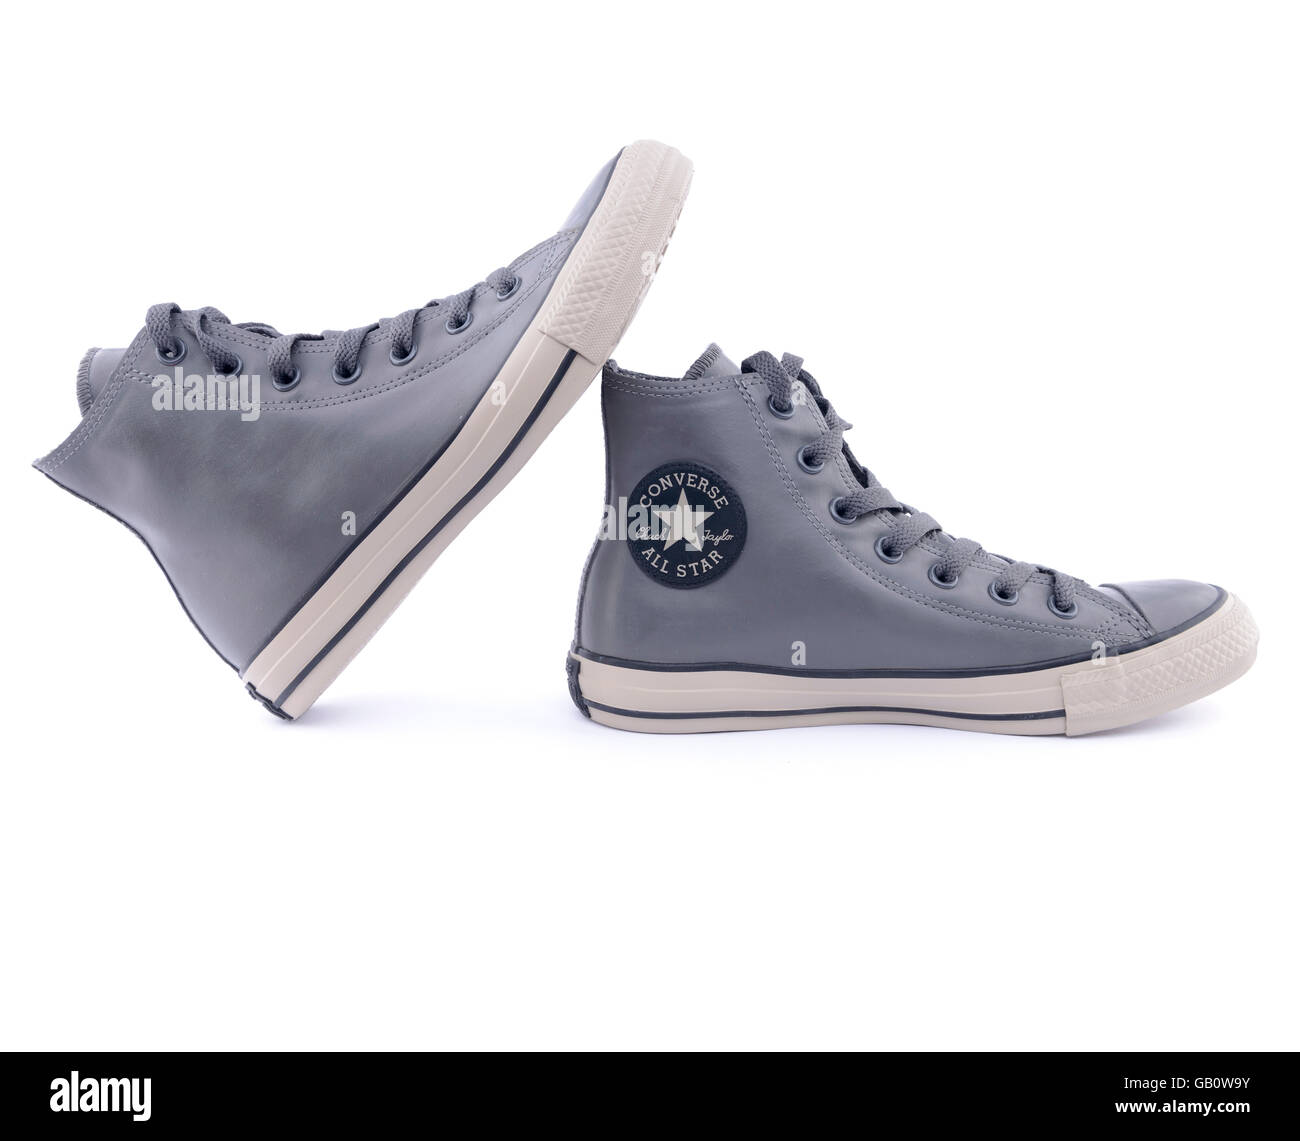 be5d9c578e0 Pair of gray Converse Chuck Taylor All Star rubber sneakers - Stock Image